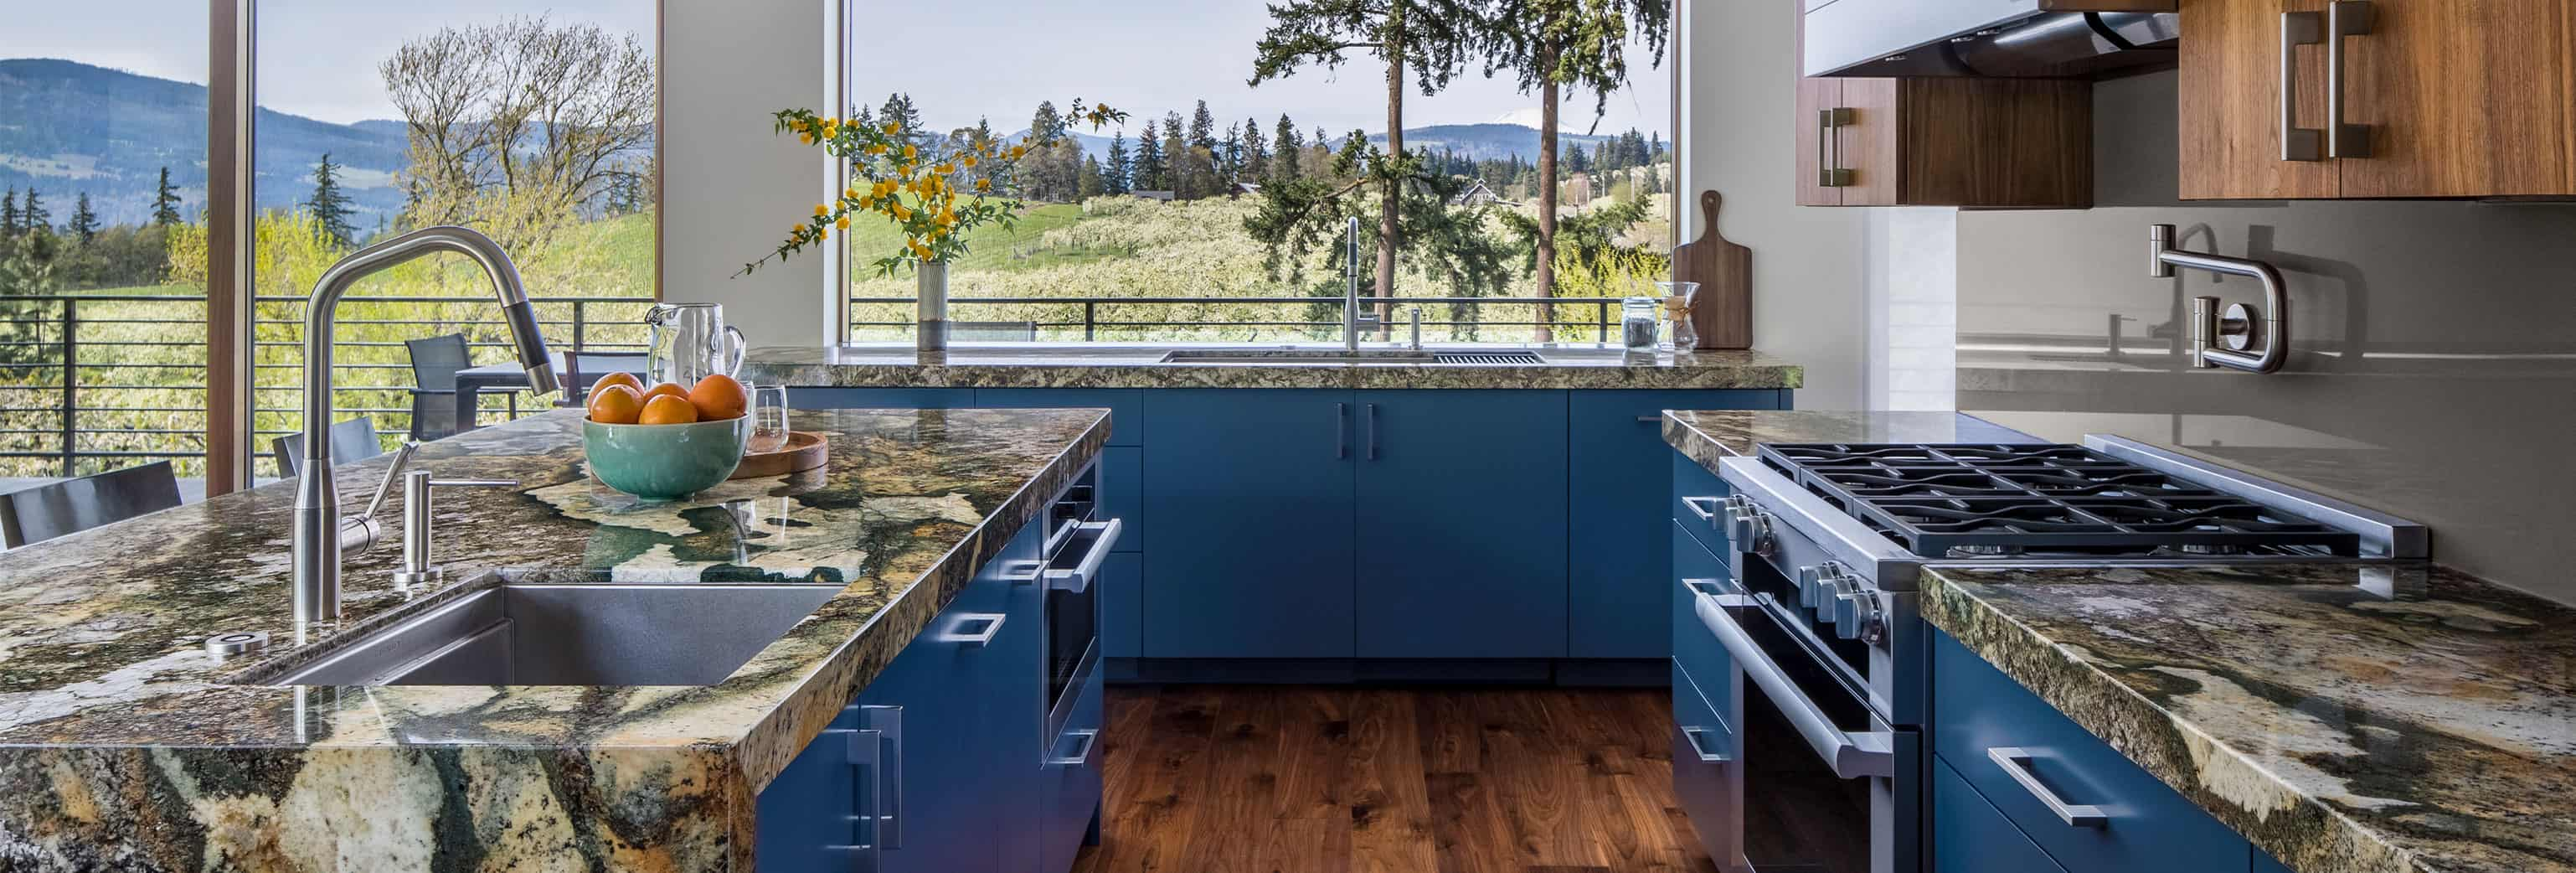 oregon Kitchen modern design